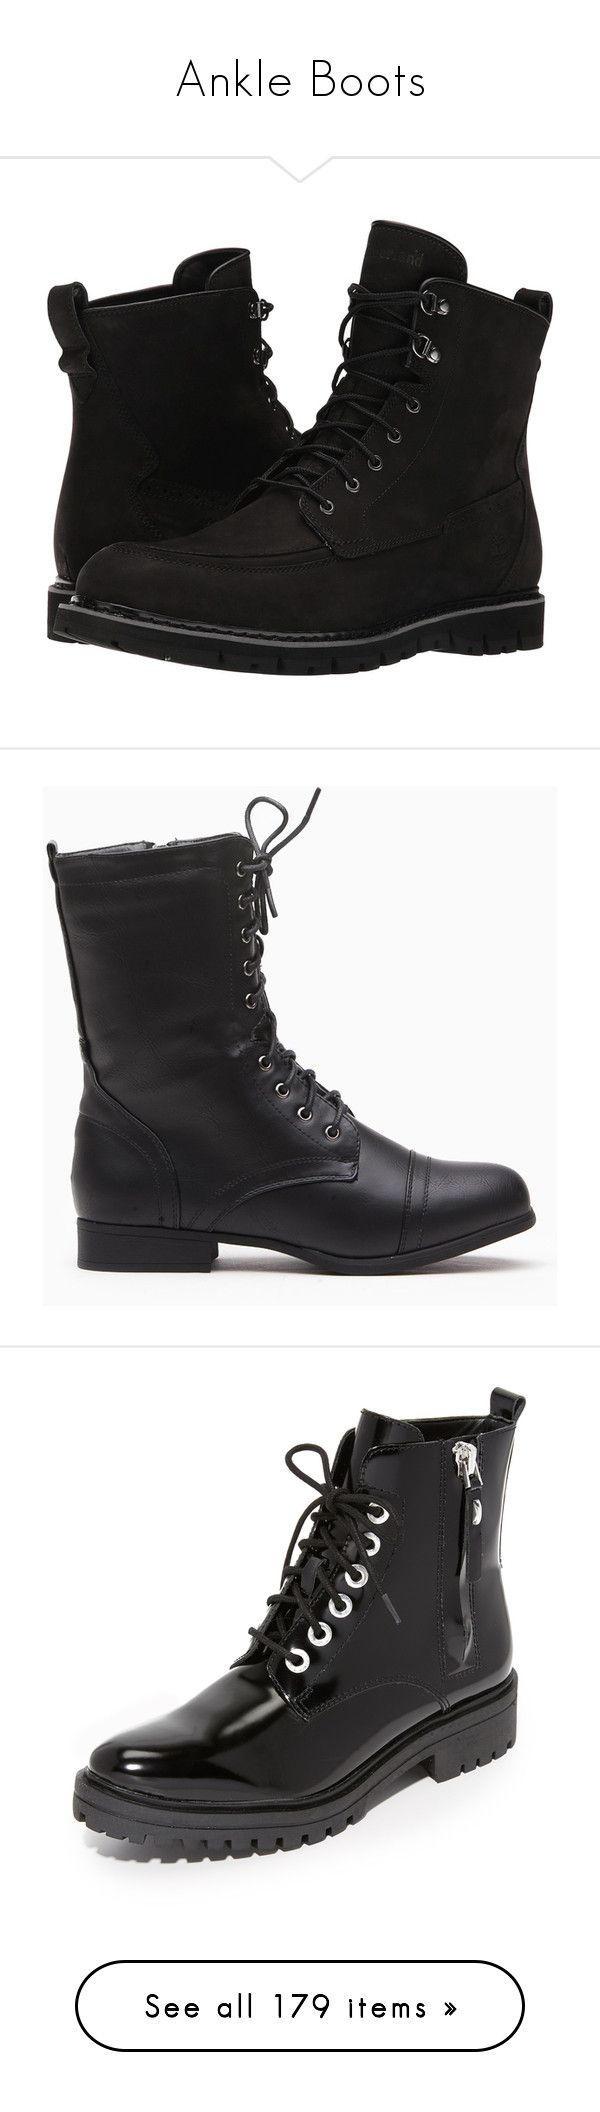 """""""Ankle Boots"""" by faithanddreams ❤ liked on Polyvore featuring men's fashion, men's shoes, men's boots, men's work boots, shoes, men, boots, men items, timberland mens boots and mens black tie"""